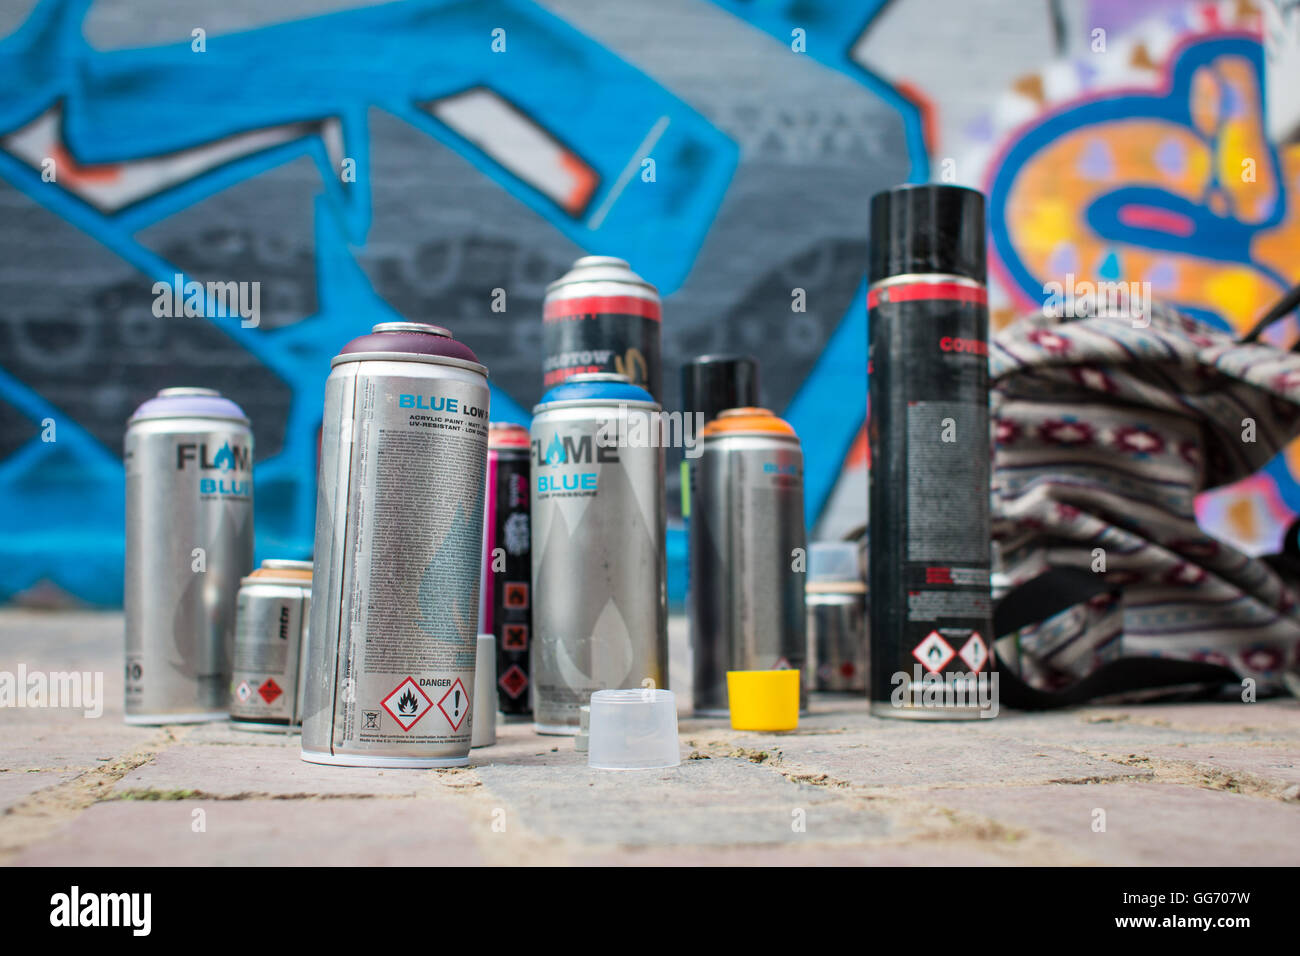 Spray Paint Cans Stock Photos & Spray Paint Cans Stock Images - Alamy